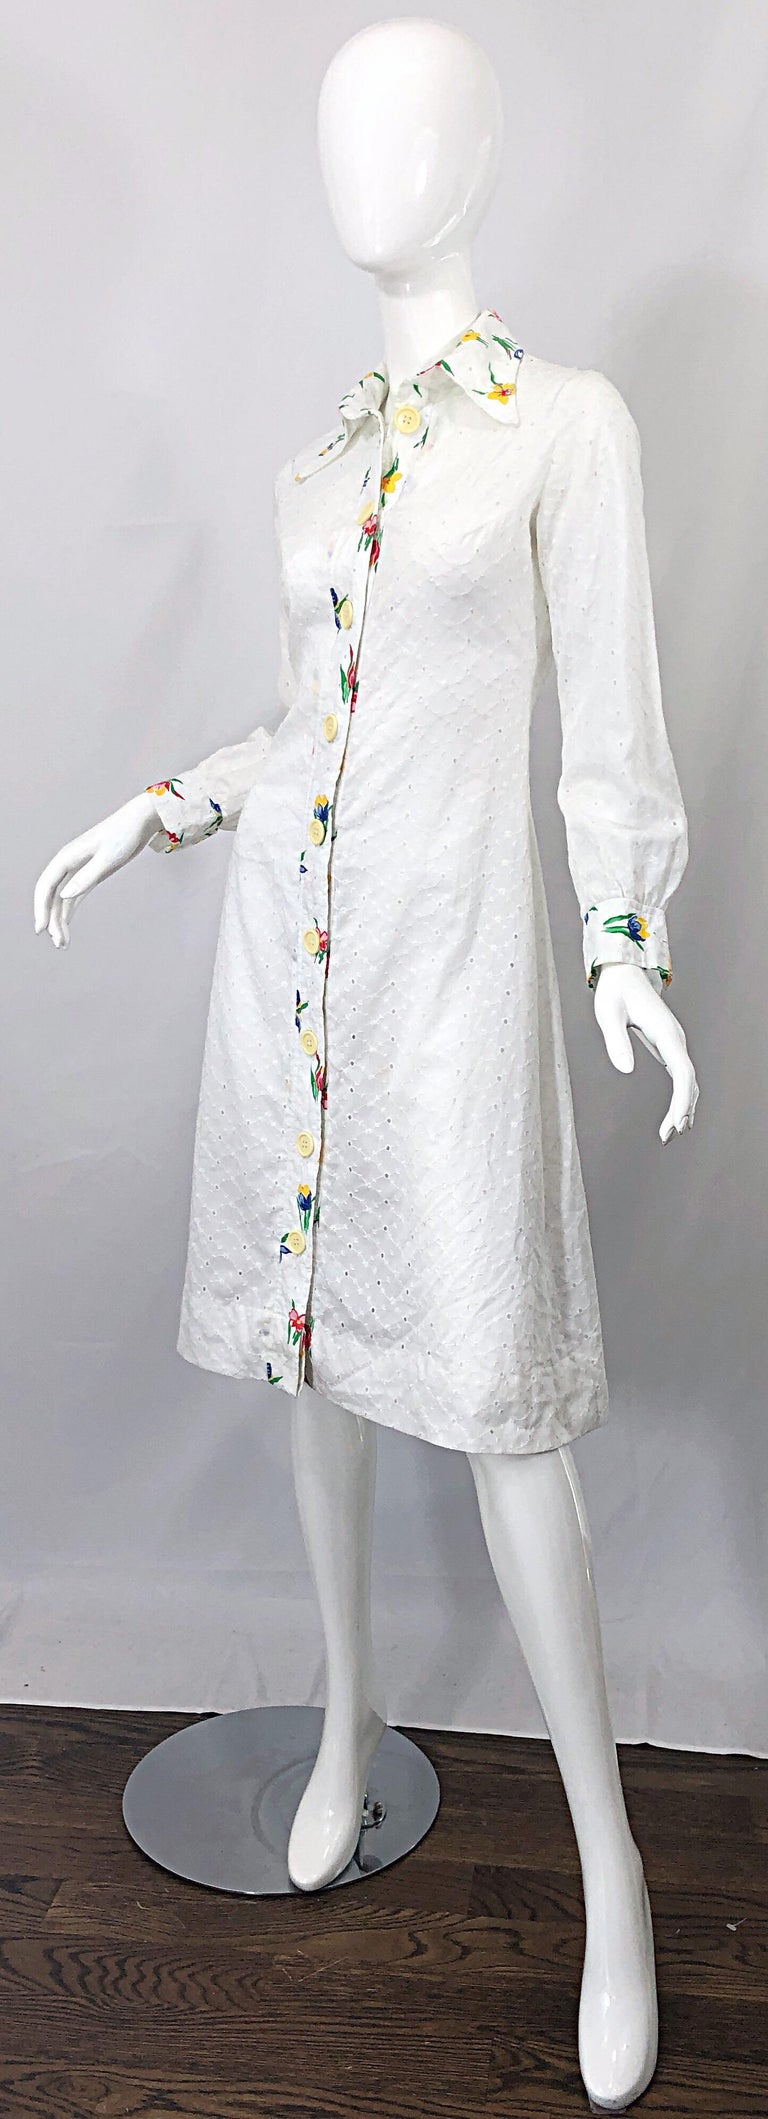 1970s Joseph Magnin White Eyelet Cotton Embrodiered Vintage 70s Shirt Dress For Sale 2